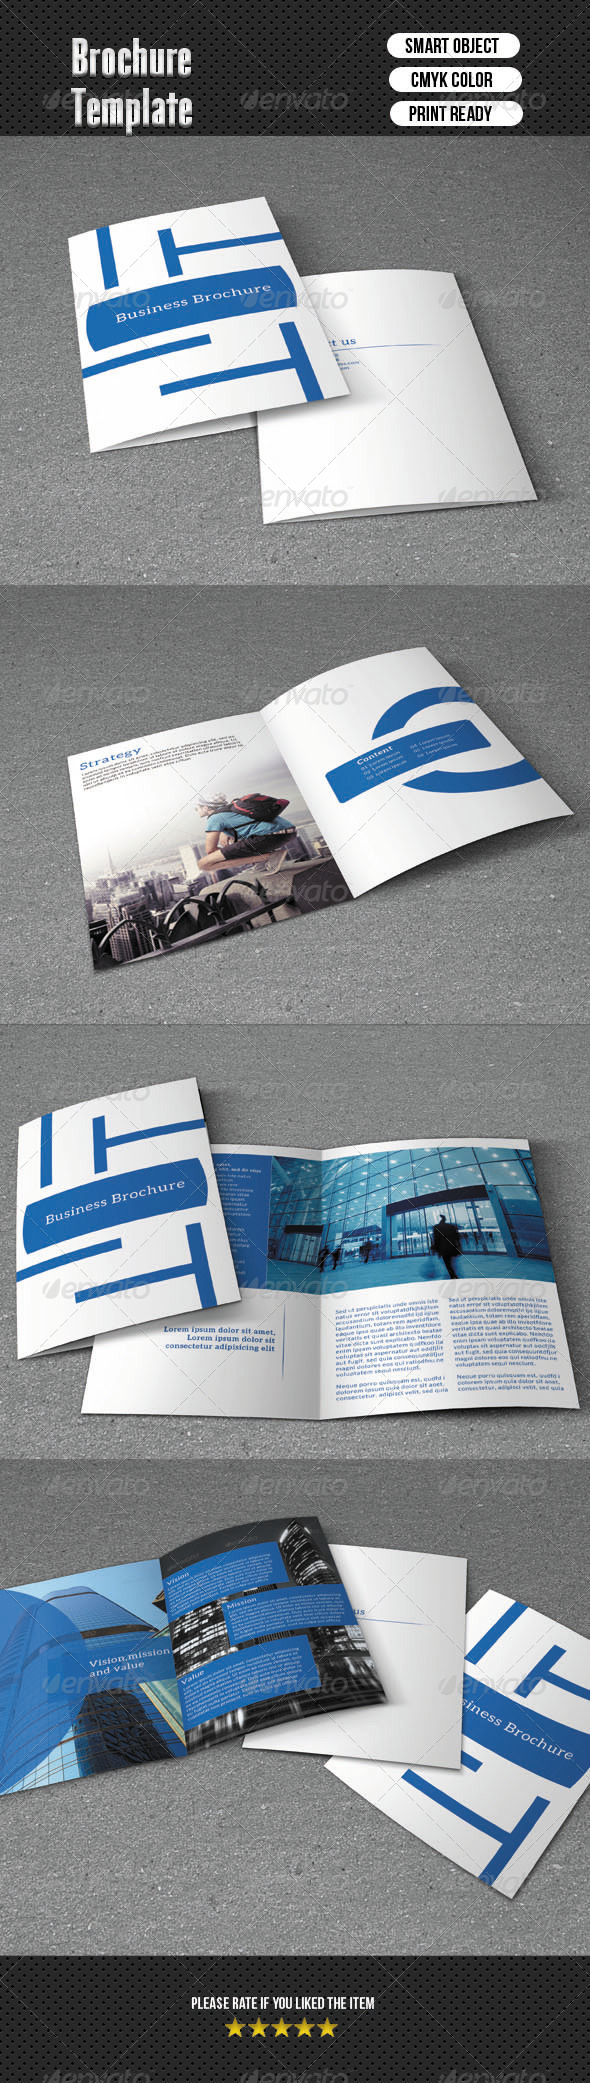 GraphicRiver Bifold Brochure-Business 8 Pages 6421431